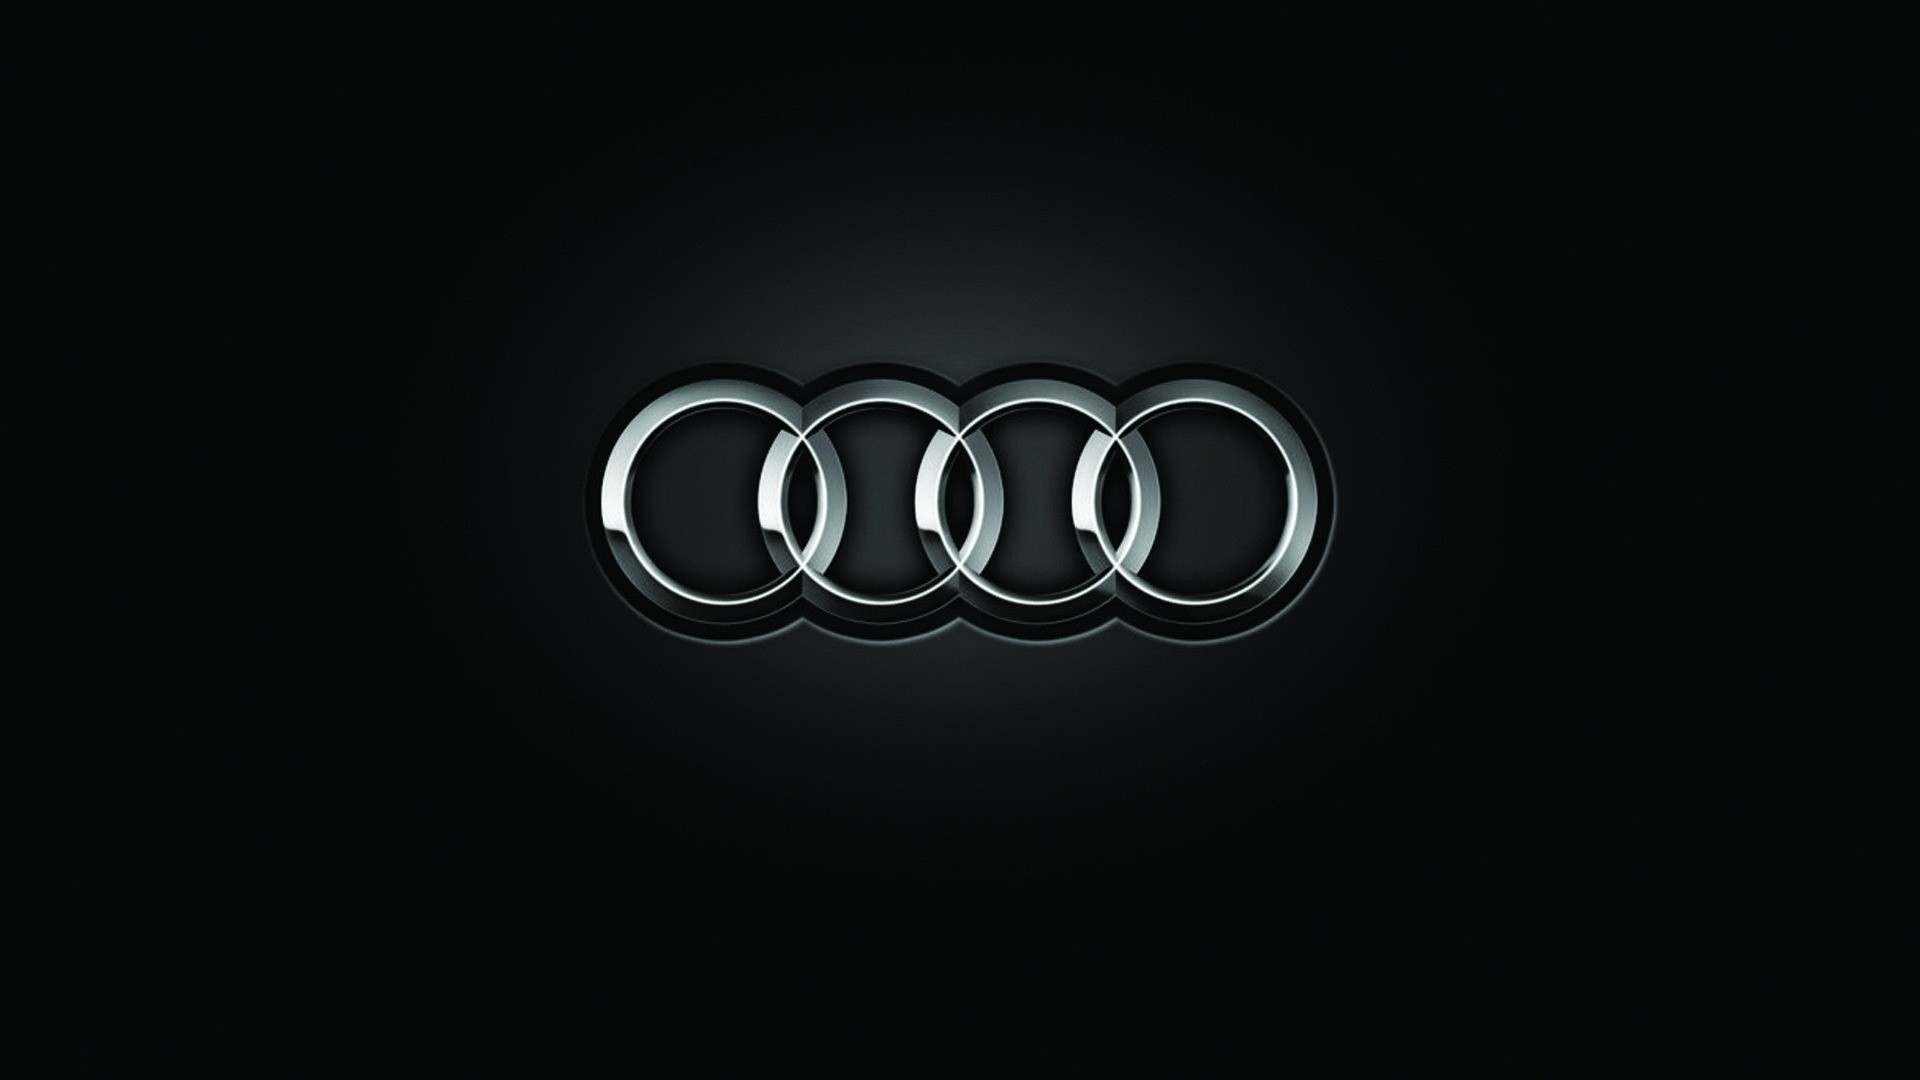 1366x768 Audi 1366x768 Resolution Hd 4k Wallpapers Images